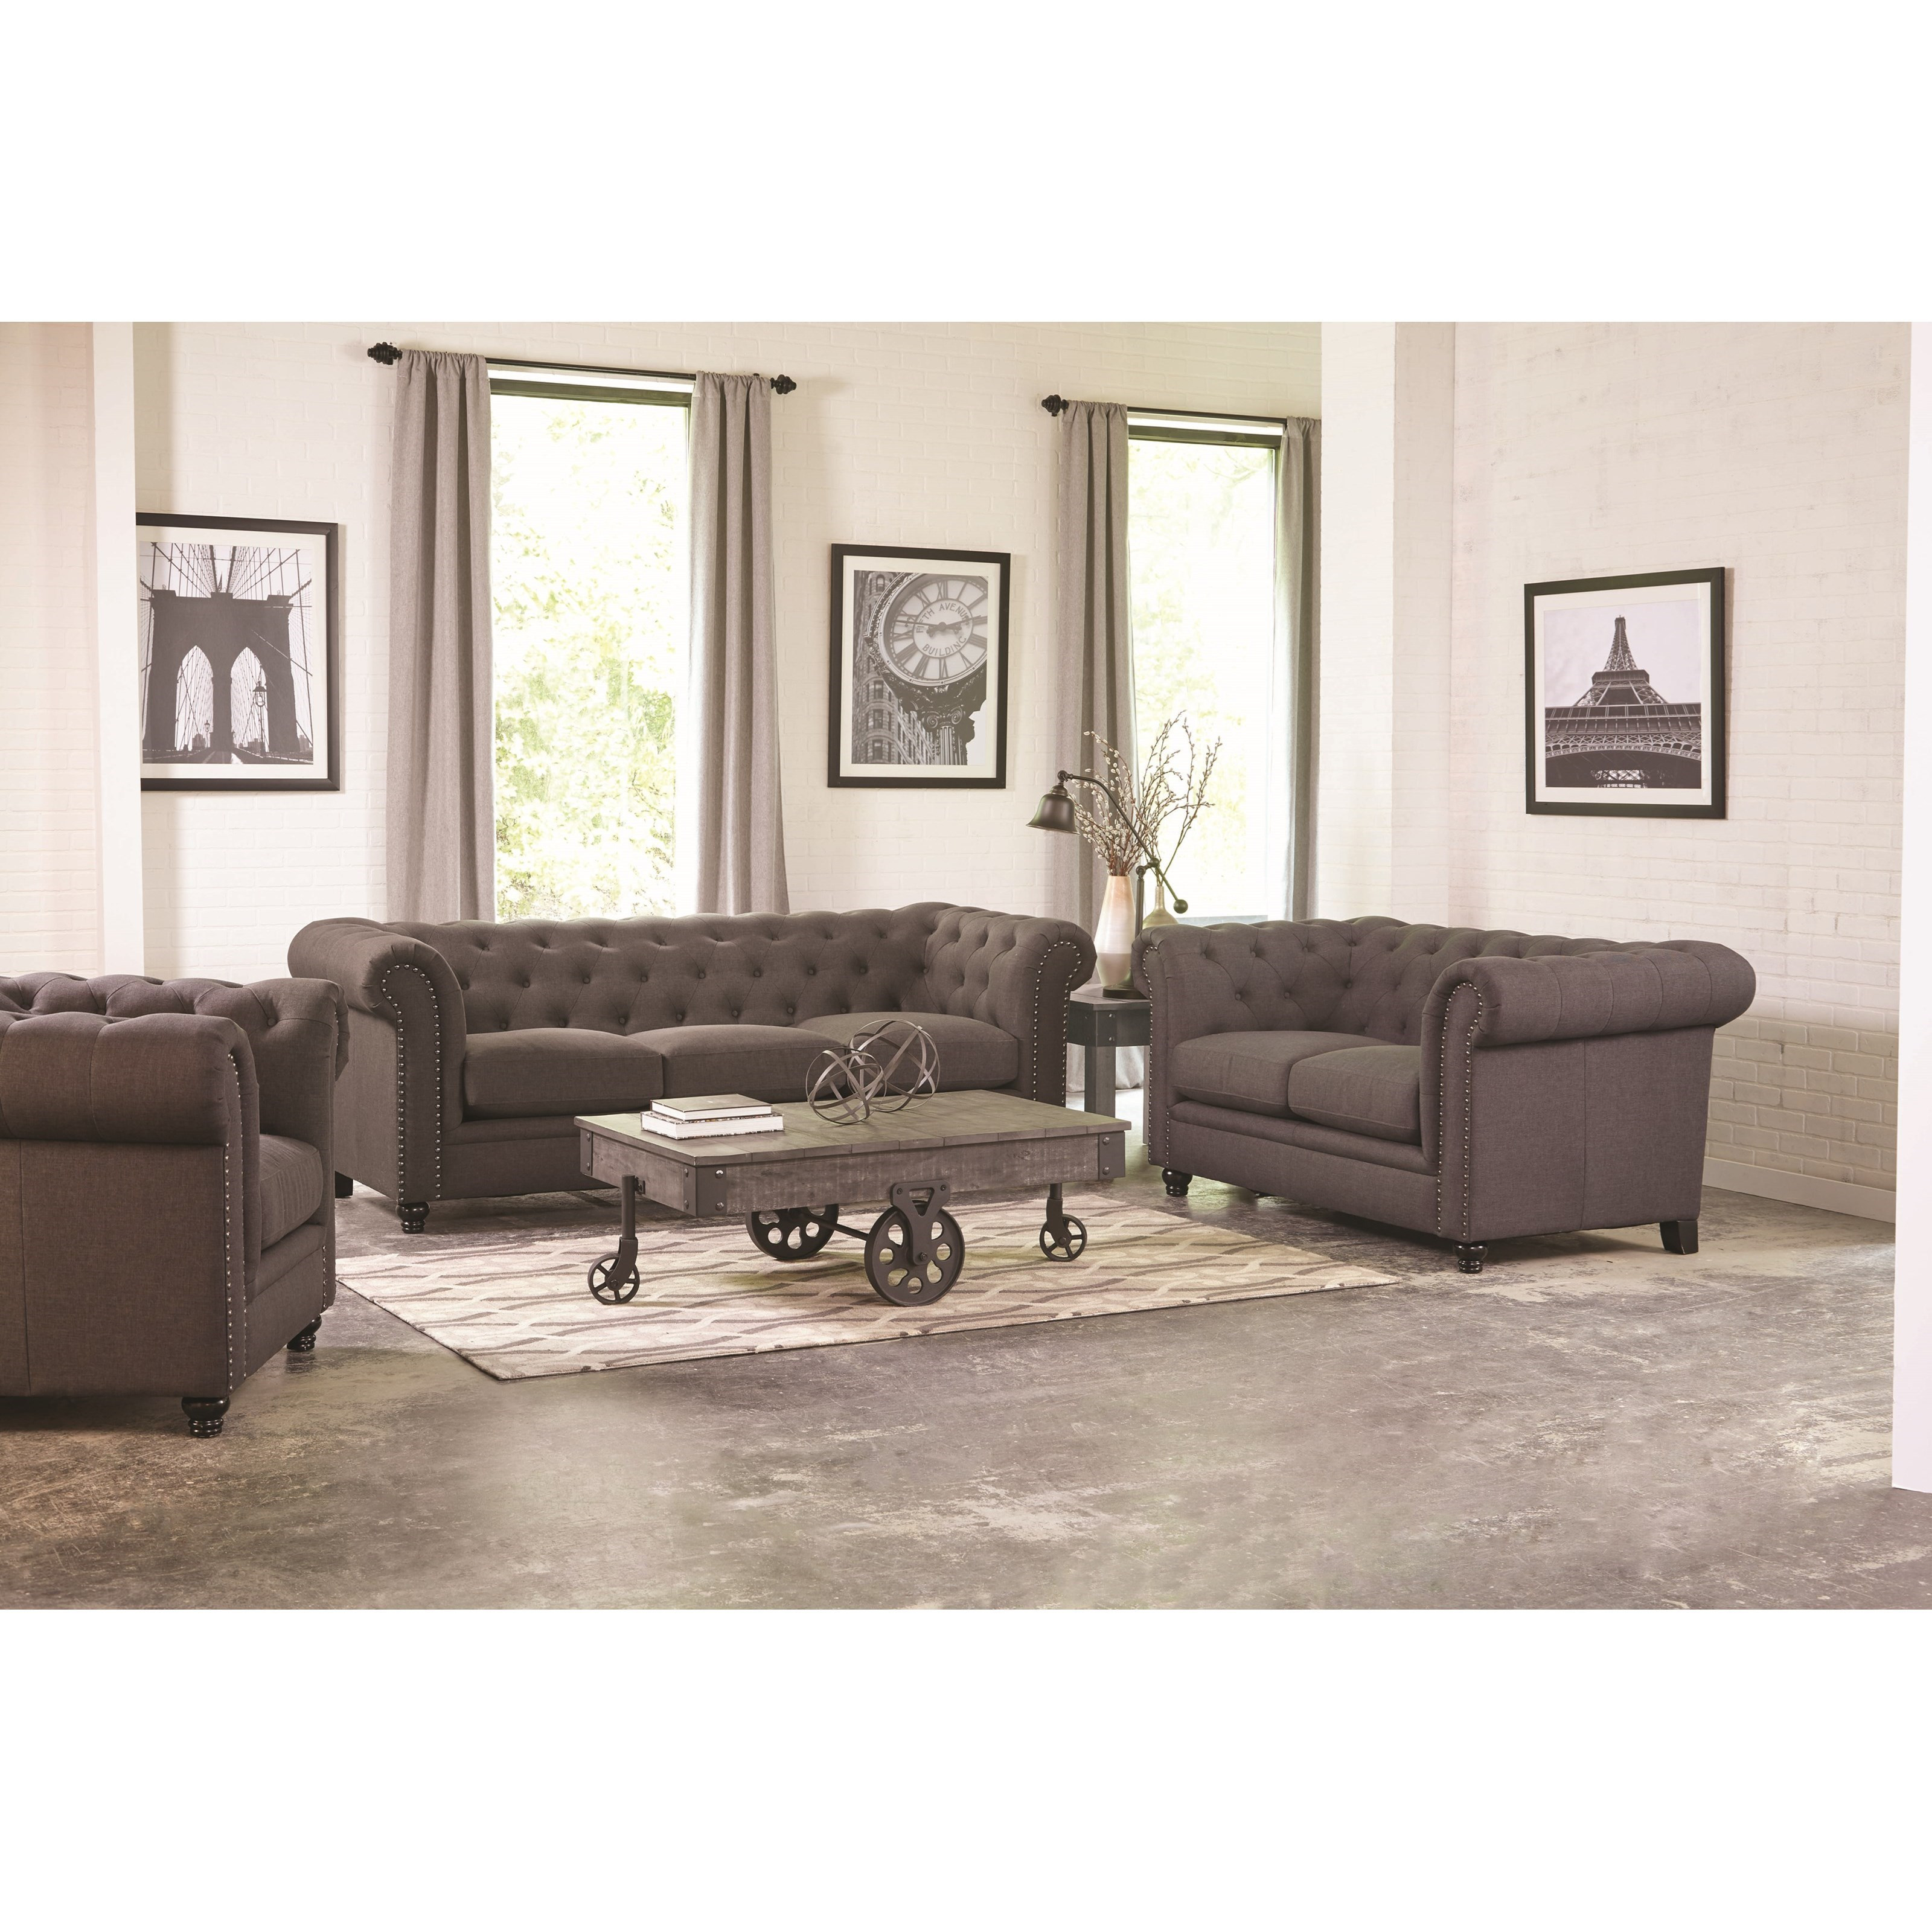 Coaster Roy Stationary Living Room Group - Item Number: 550360 Living Room Group 1